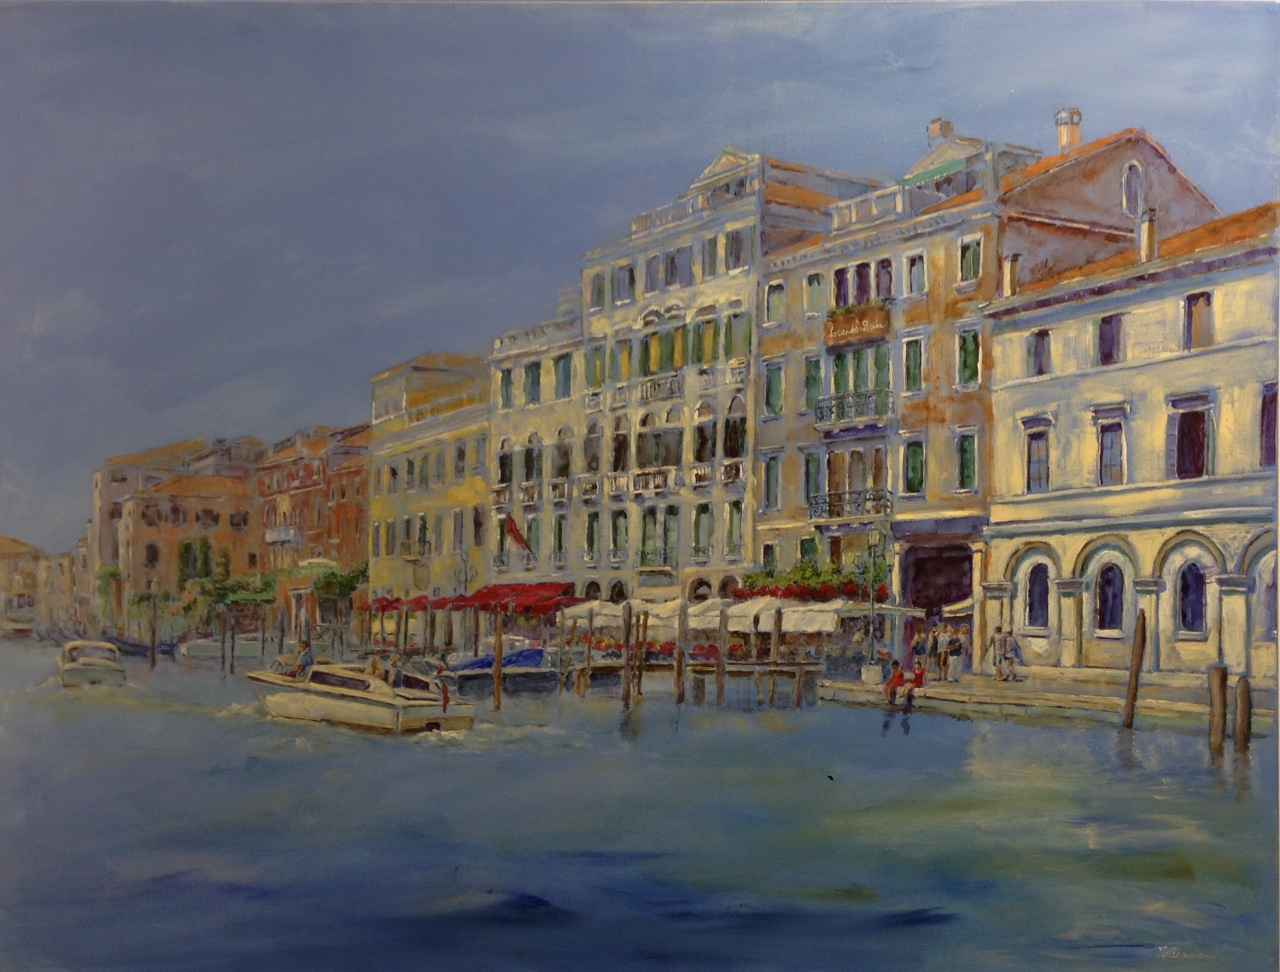 Dreaming of Venice by  Nadia Lassman - Masterpiece Online